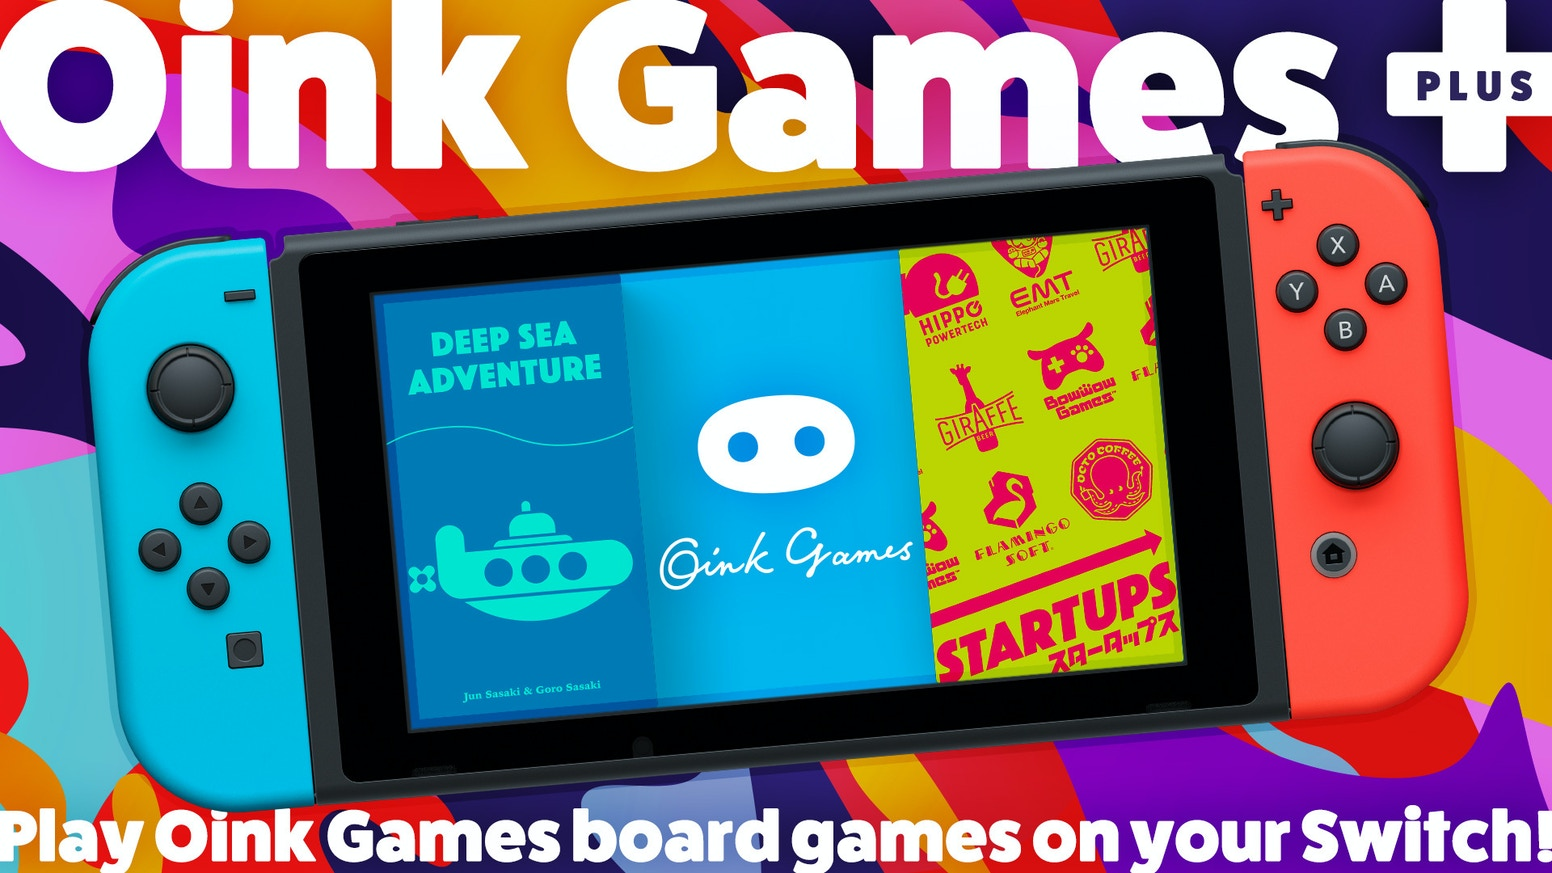 Play Oink Games board games on your Switch!